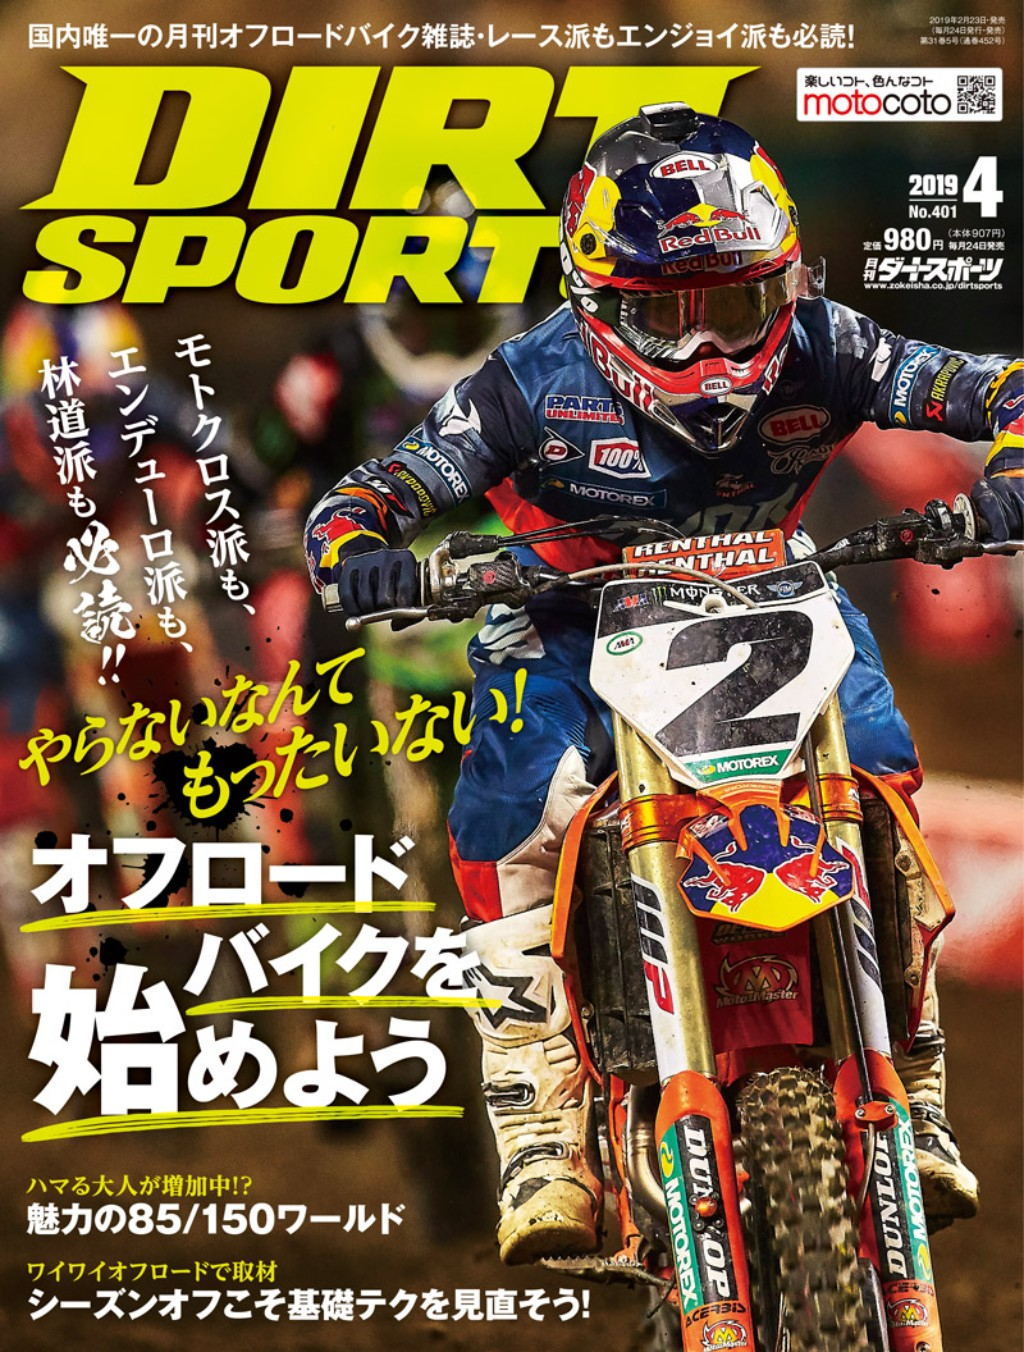 Zokeisha Monthly Magazine Dirt Sports 2019 April Issue